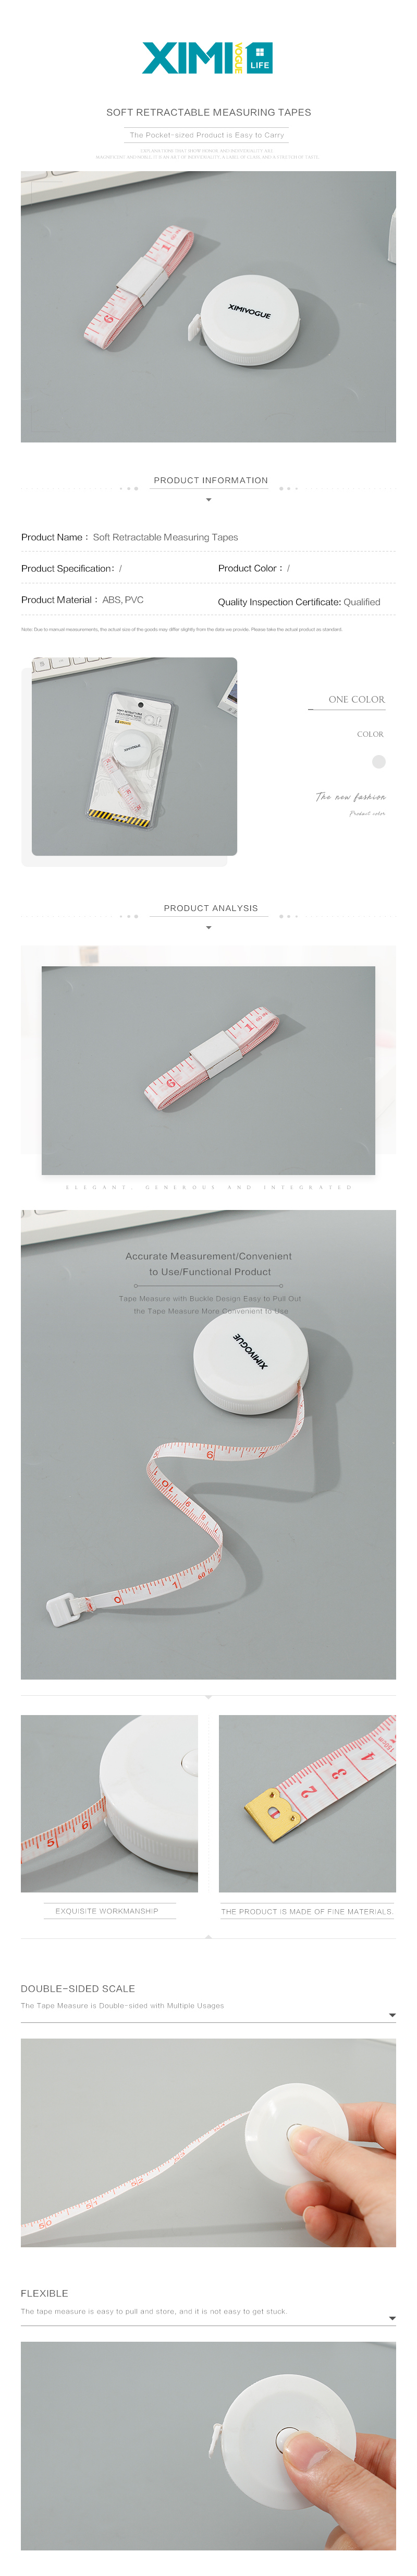 Soft Retractable Measuring Tapes